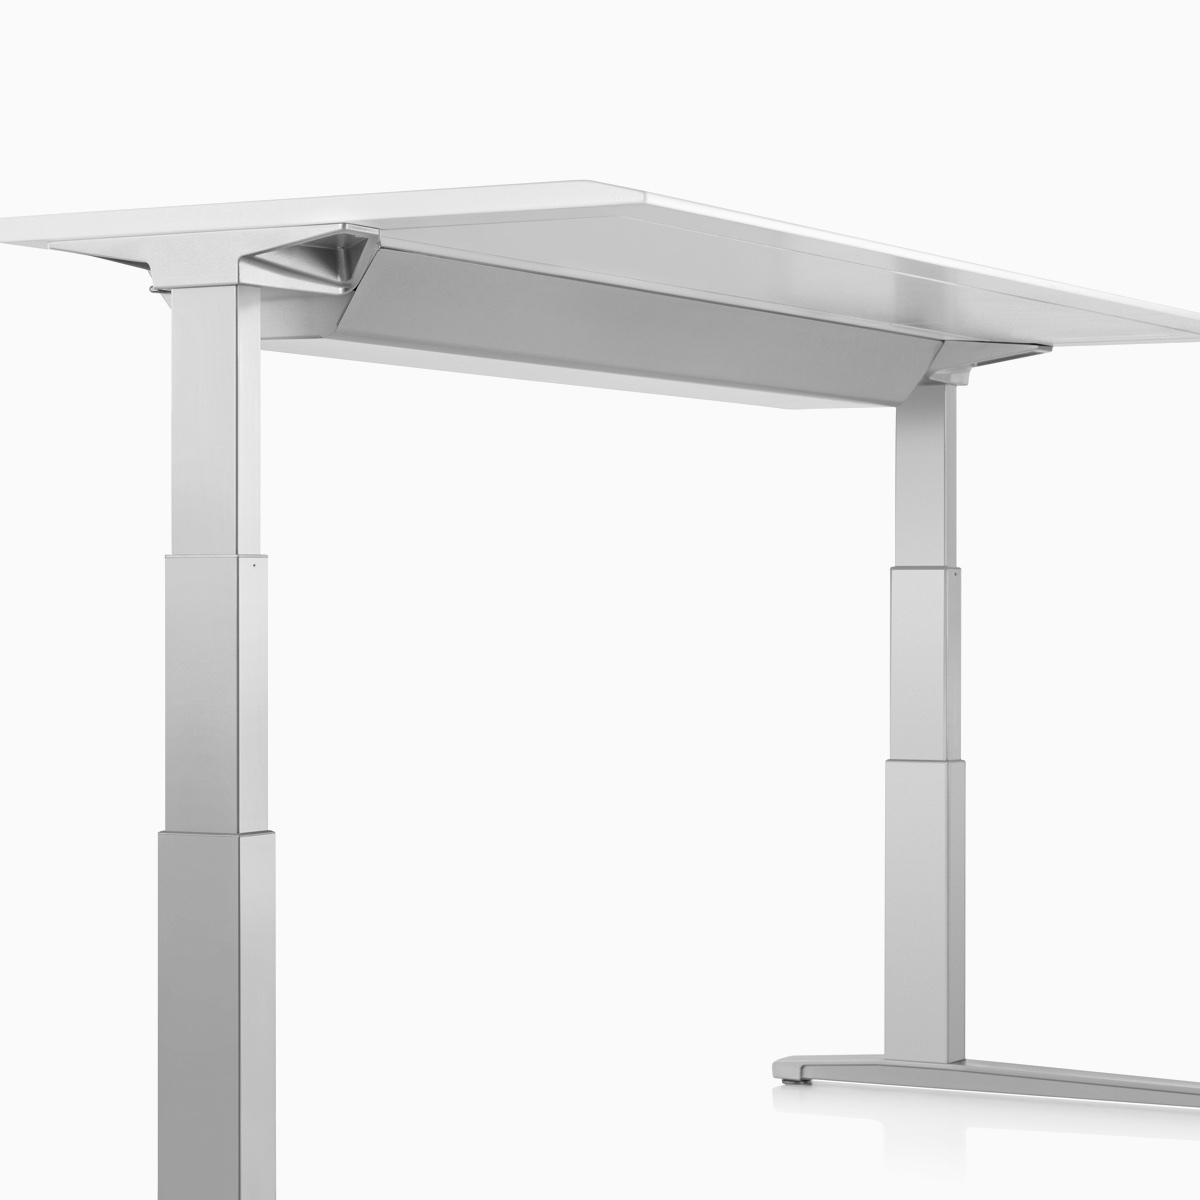 Viewed at an angle, a closed high-density cable tray that's attached to the underside of a Renew Sit-to-Stand Table's work surface.